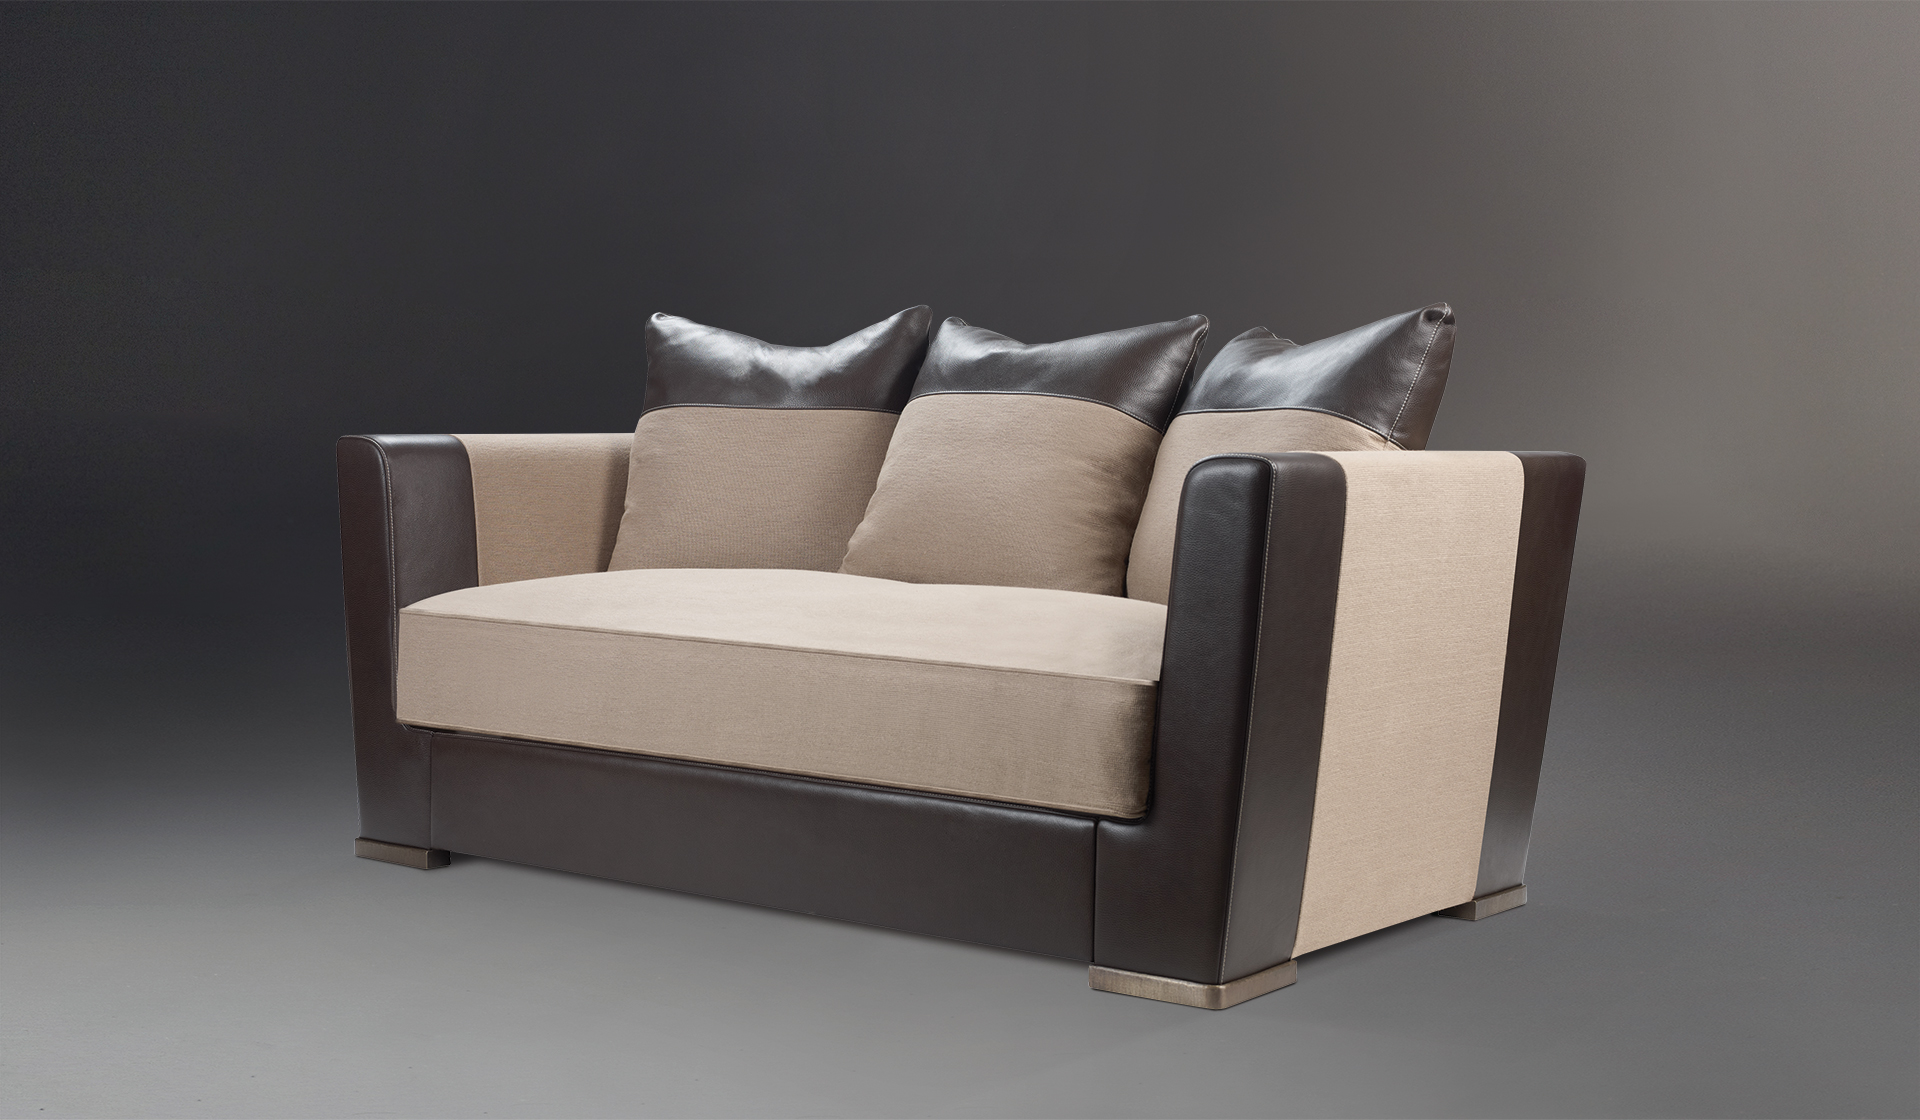 Dolce Vita is a sofa covered in fabric with leather details and bronze feet, from Promemoria's catalogue | Promemoria